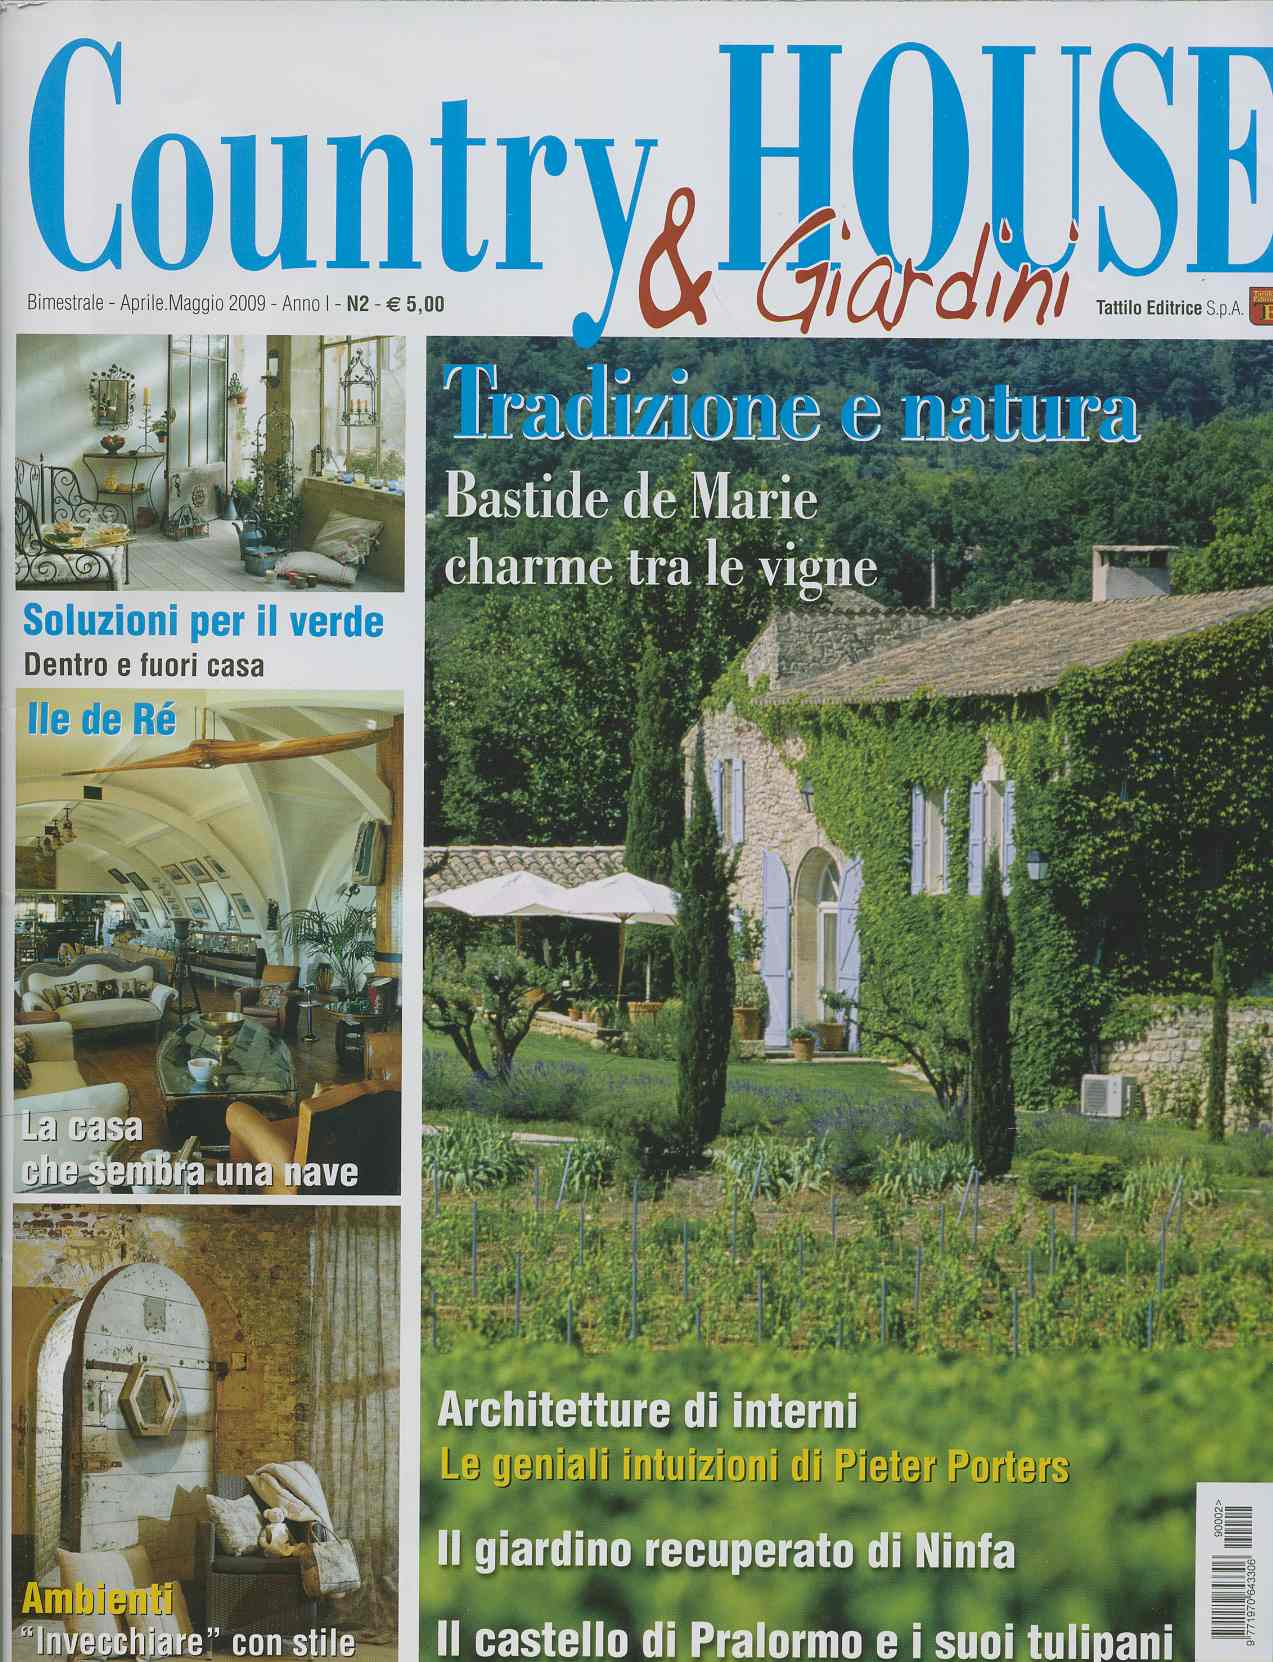 Country House & Giardini - Umbria Farmhouse